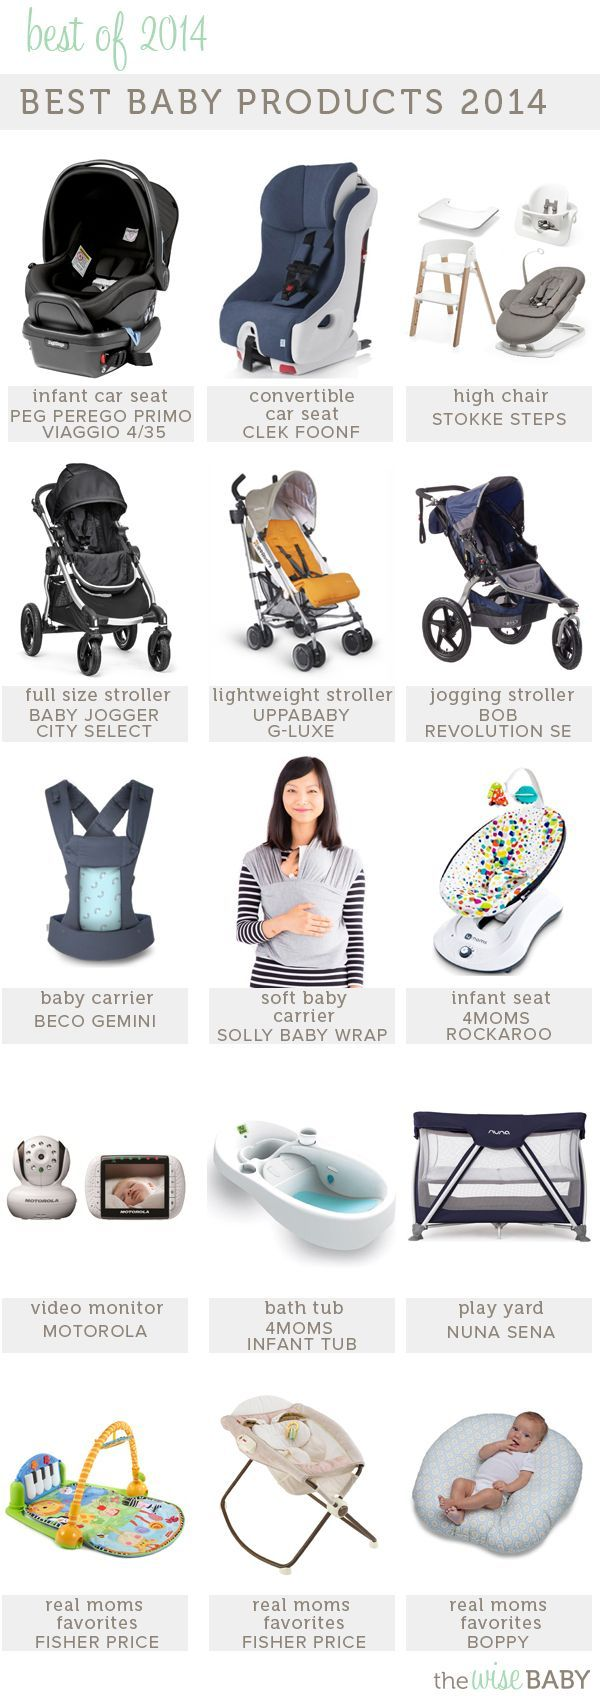 Best Baby Products 2014 based on real mom reviews and testing!